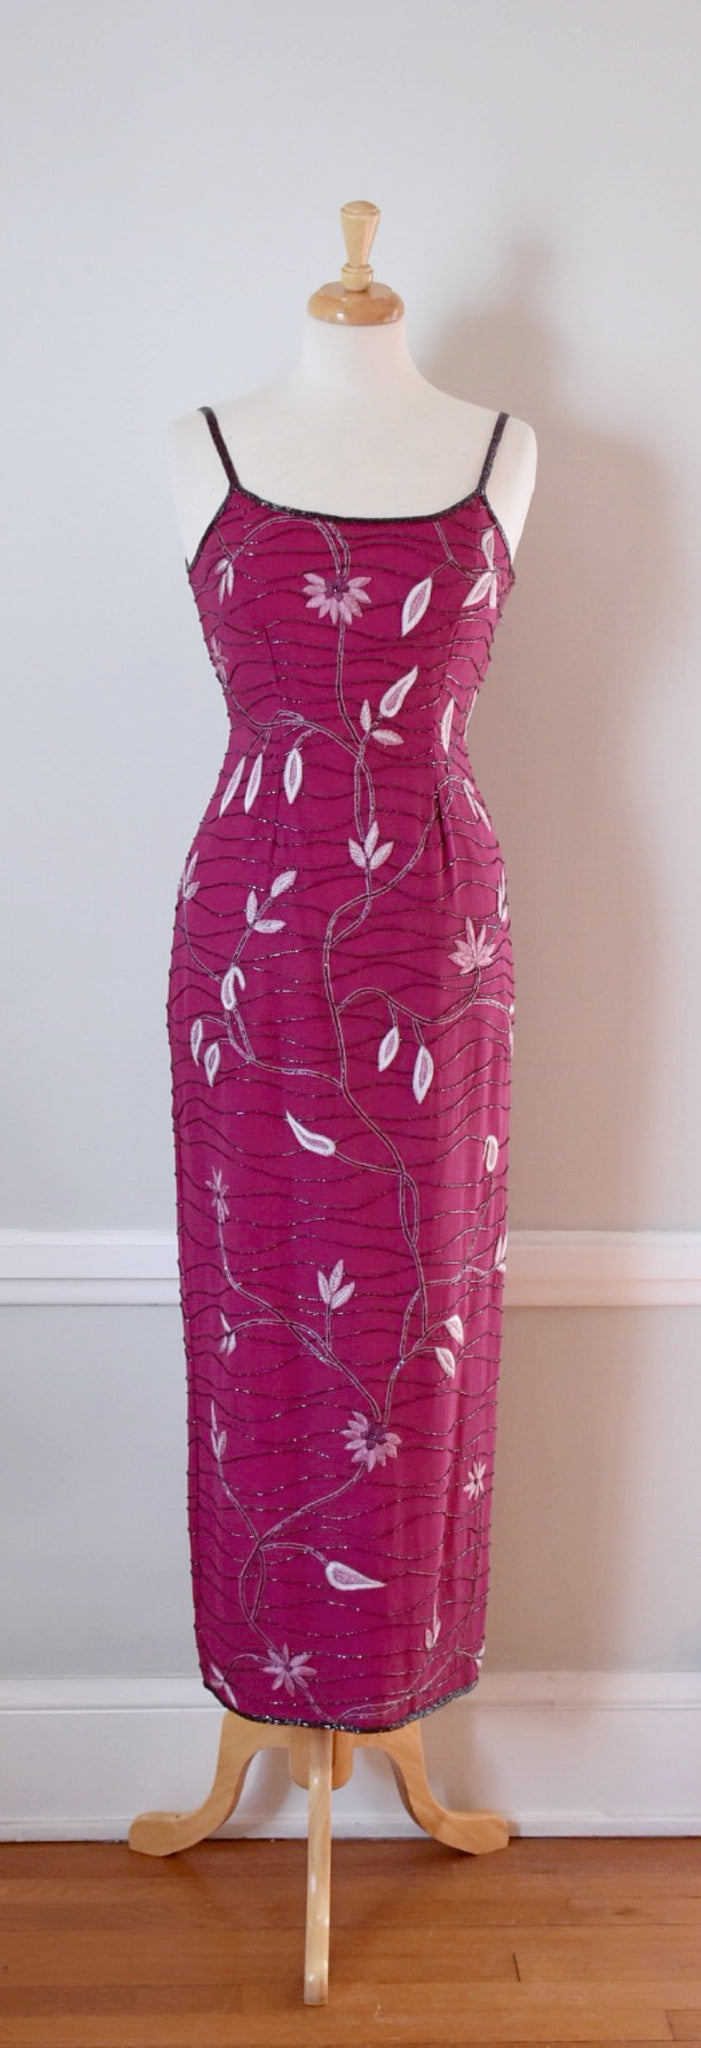 90s Beaded Formal Dress